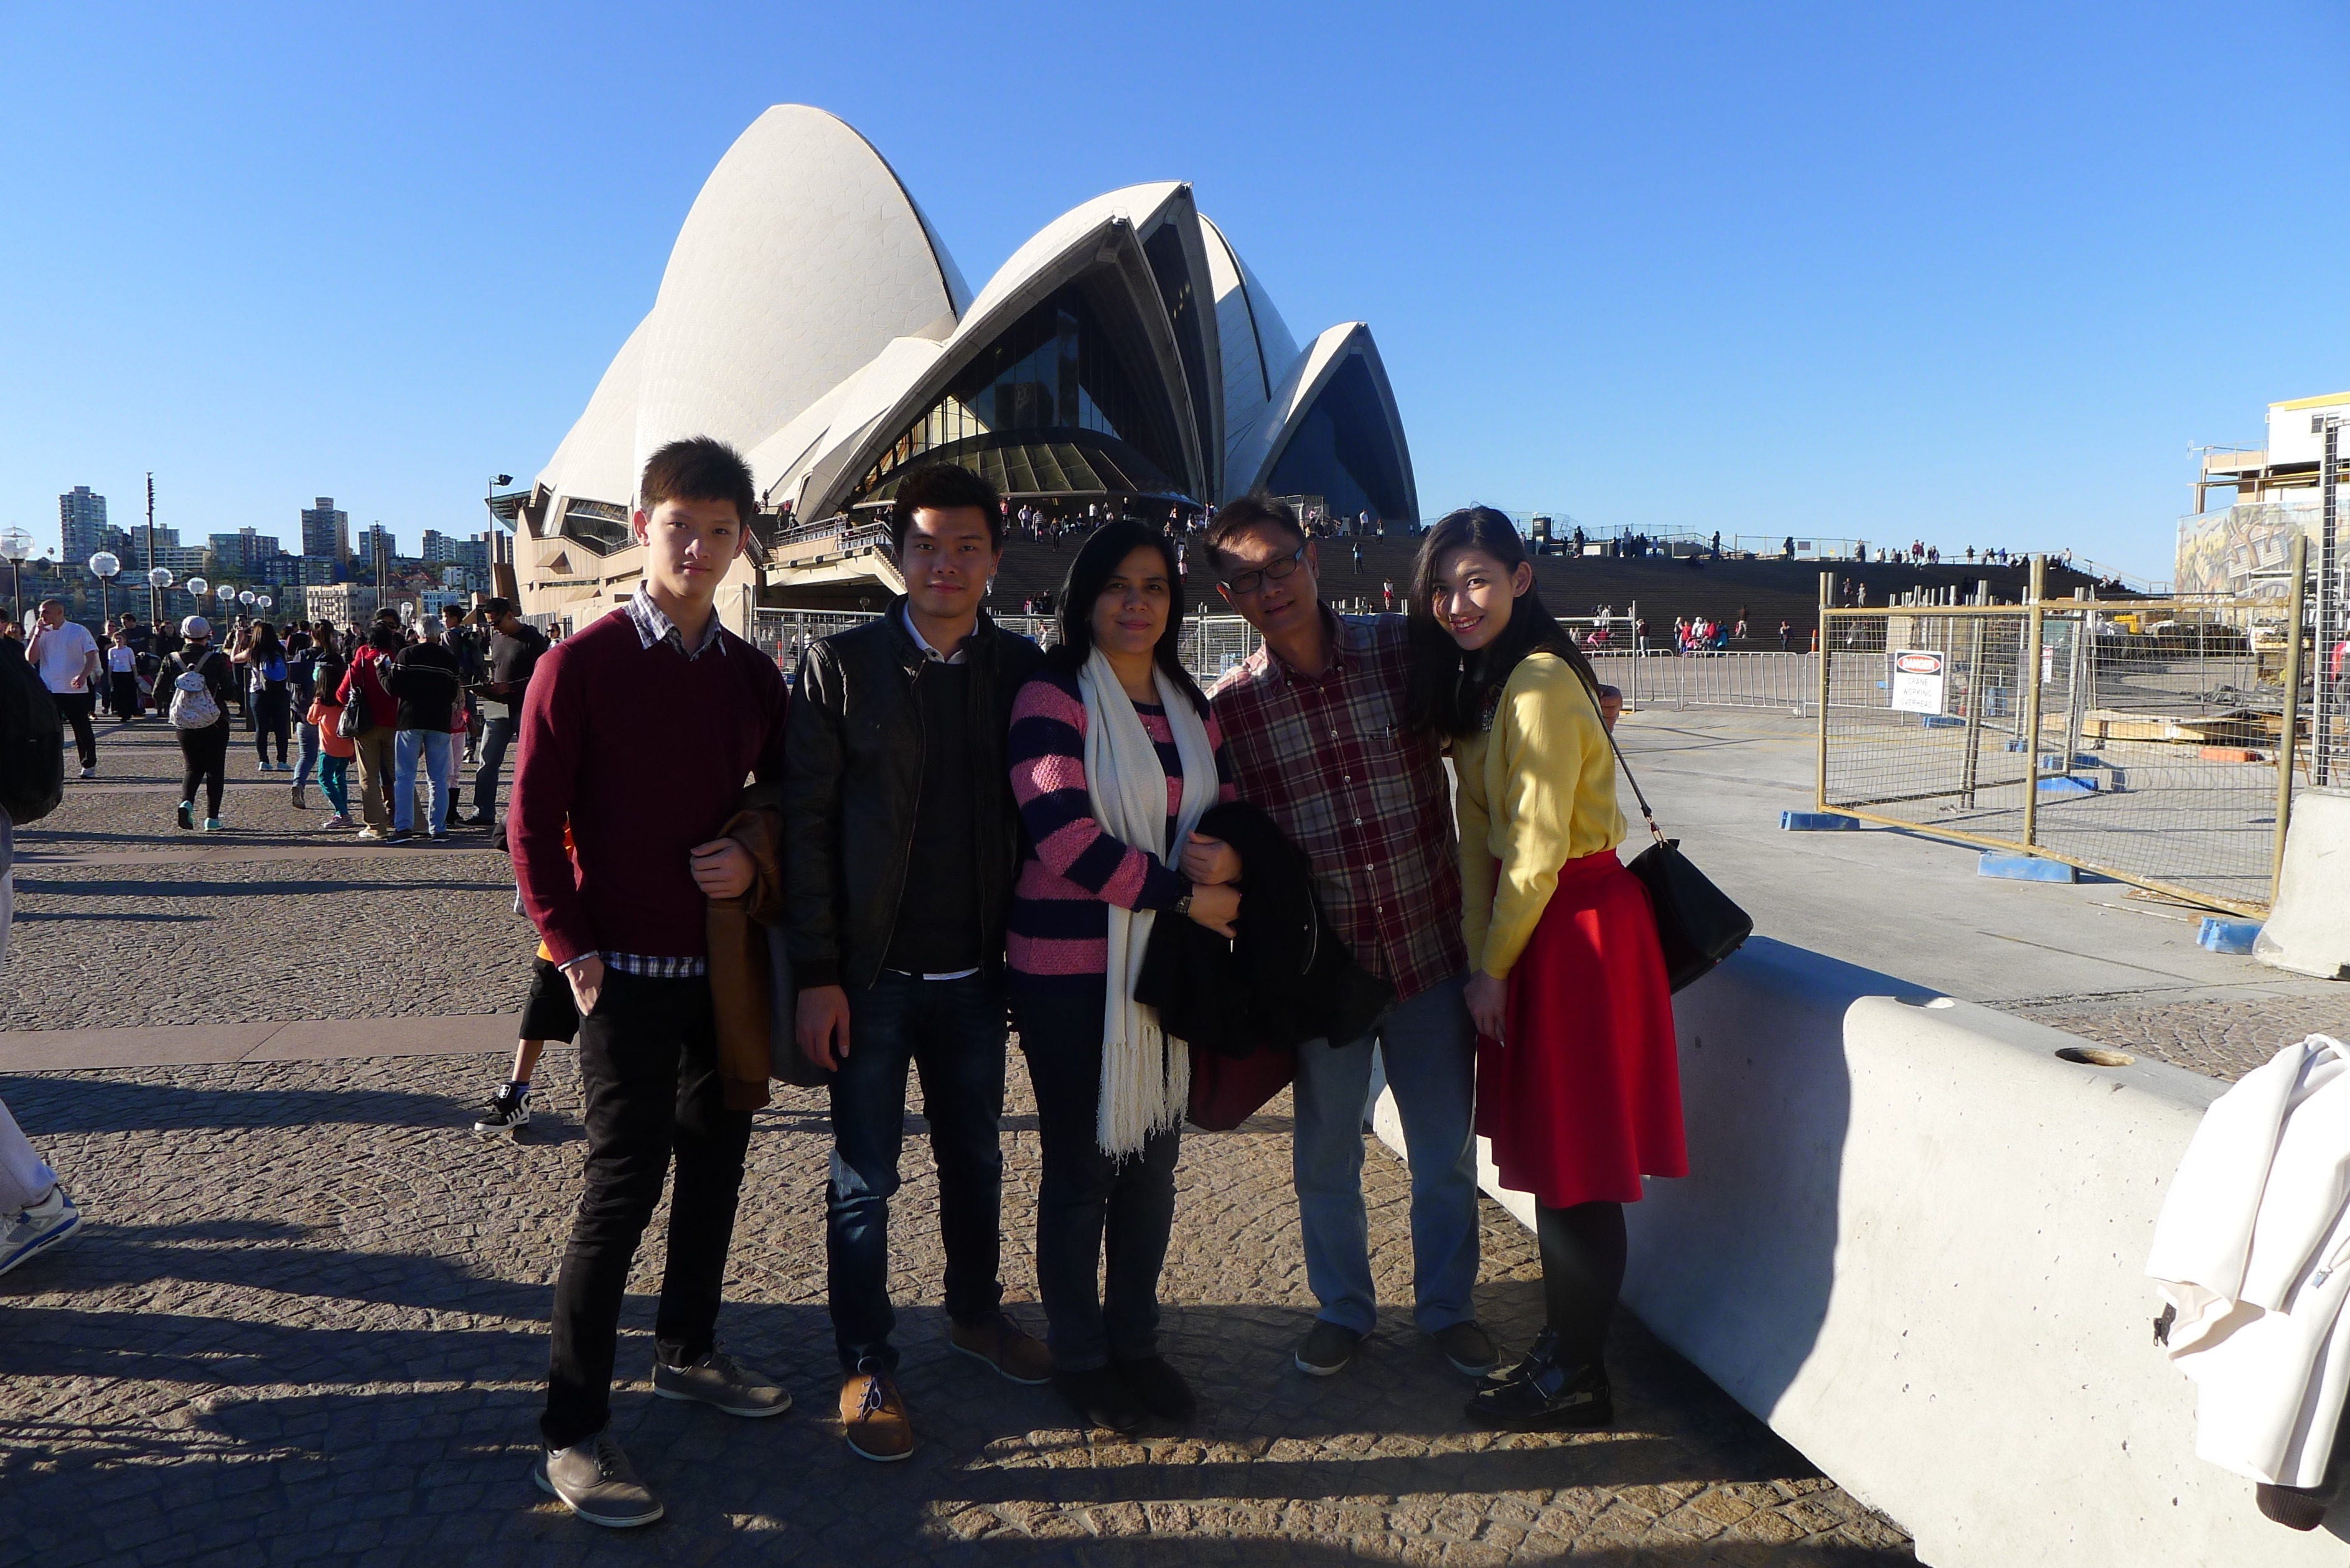 The great Sydney Opera House